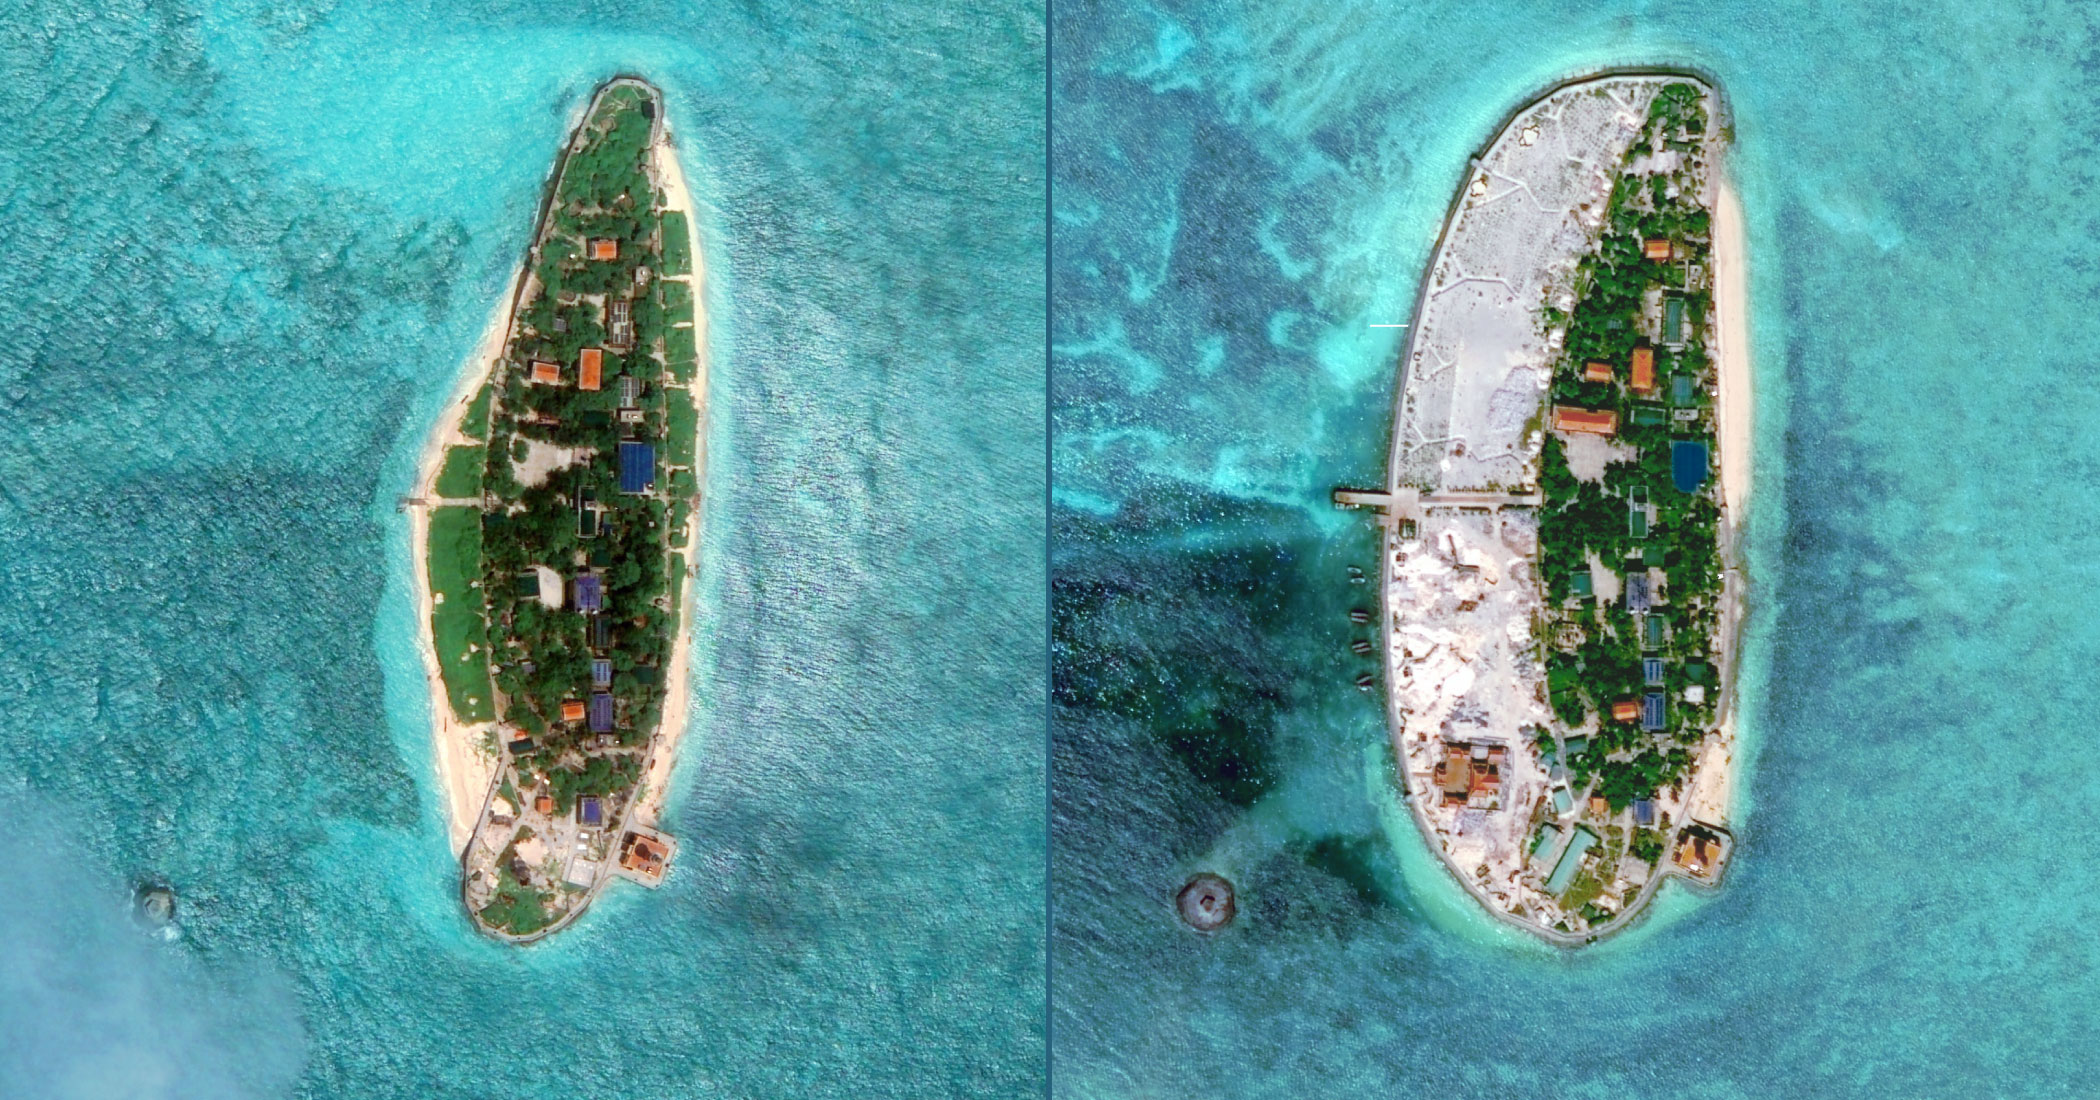 Land reclamation at Vietnam's Sand Cay.  Image by DigitalGlobe, via CSIS Asia Maritime Transparency Initiative